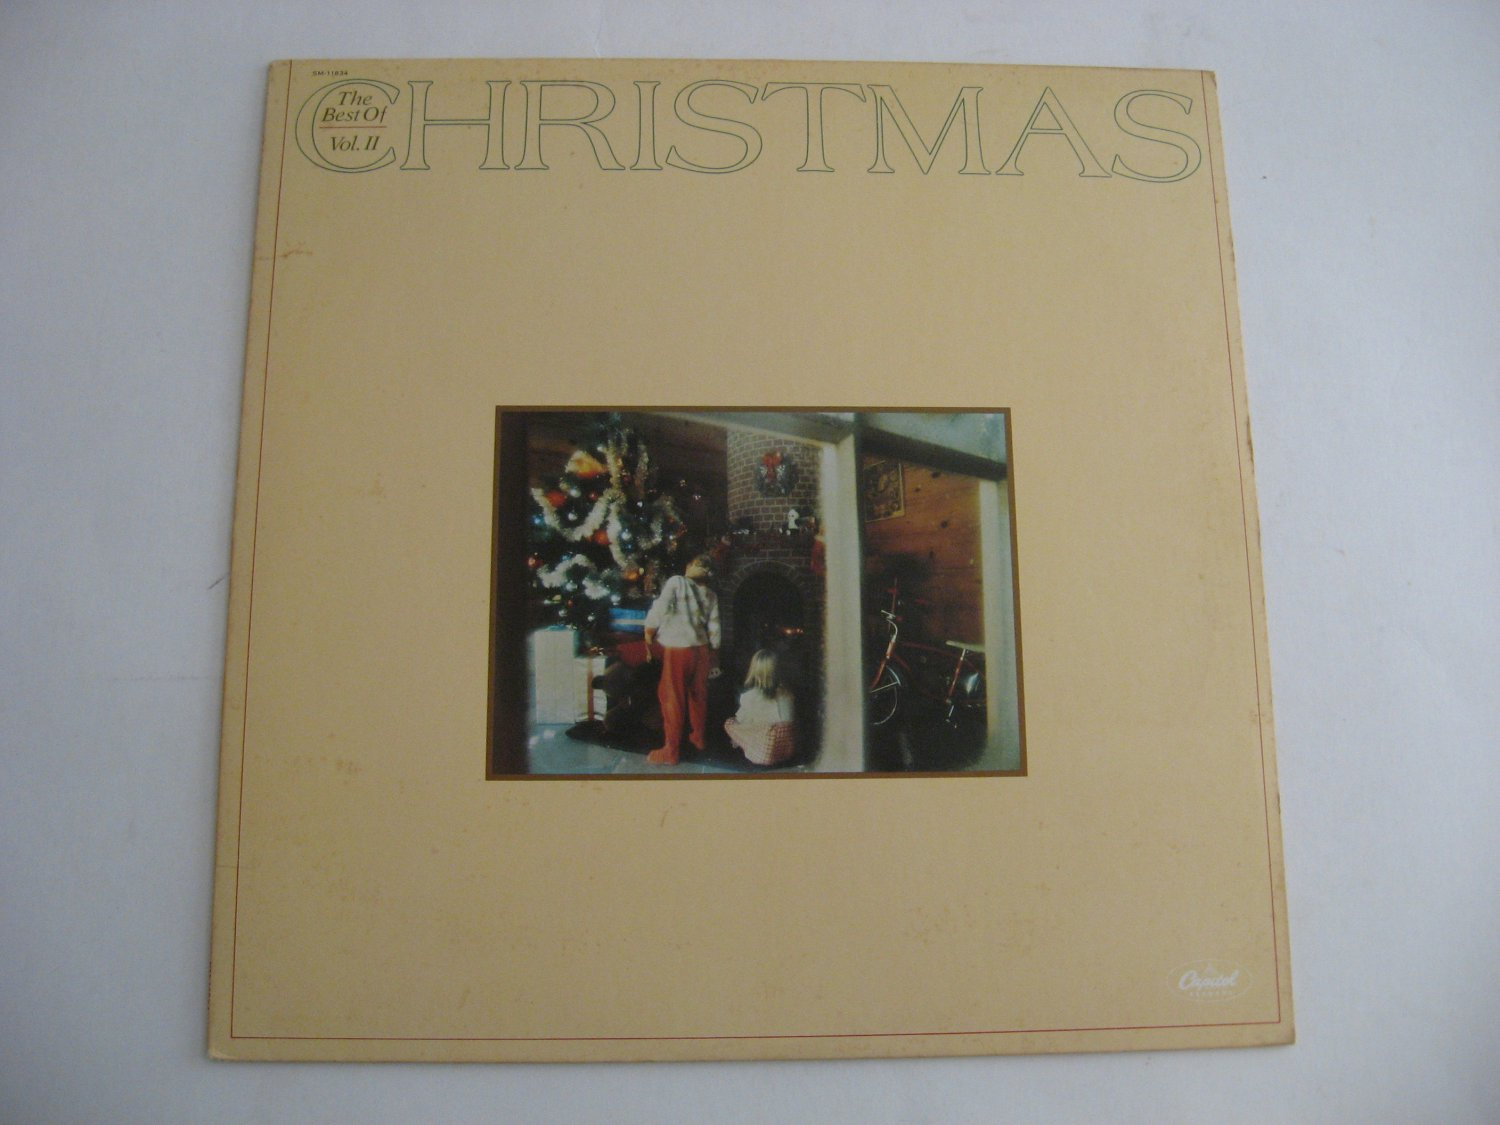 Dean Martin - Ella Fitzgerald and many more - The Best Of Christmas Volume 2 - Circa 1978